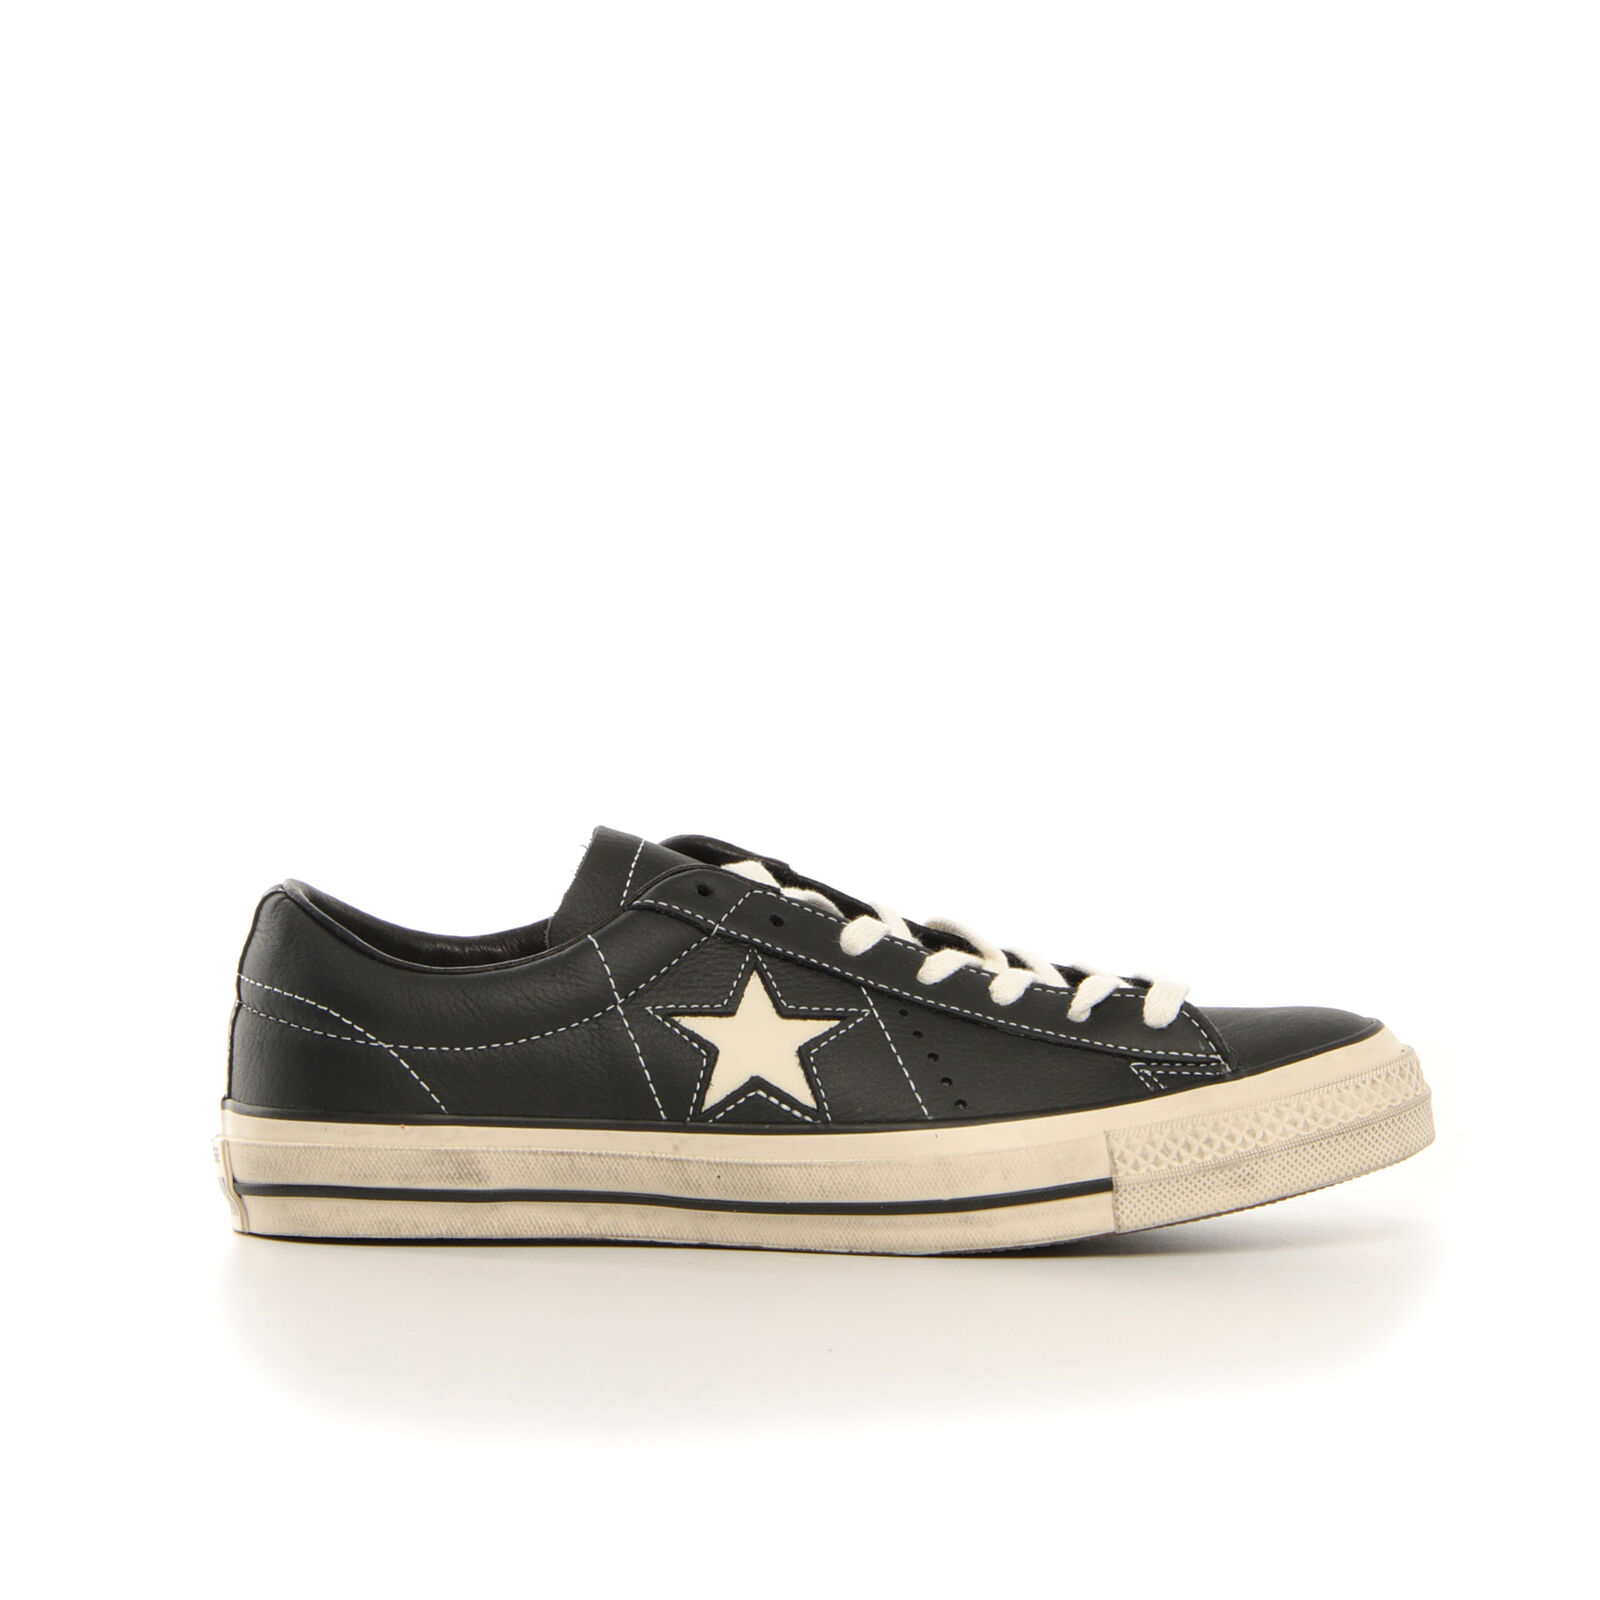 CONVERSE ONE STAR OX LEA DISTRESSE shoes FREE TIME UNISEX 158989C